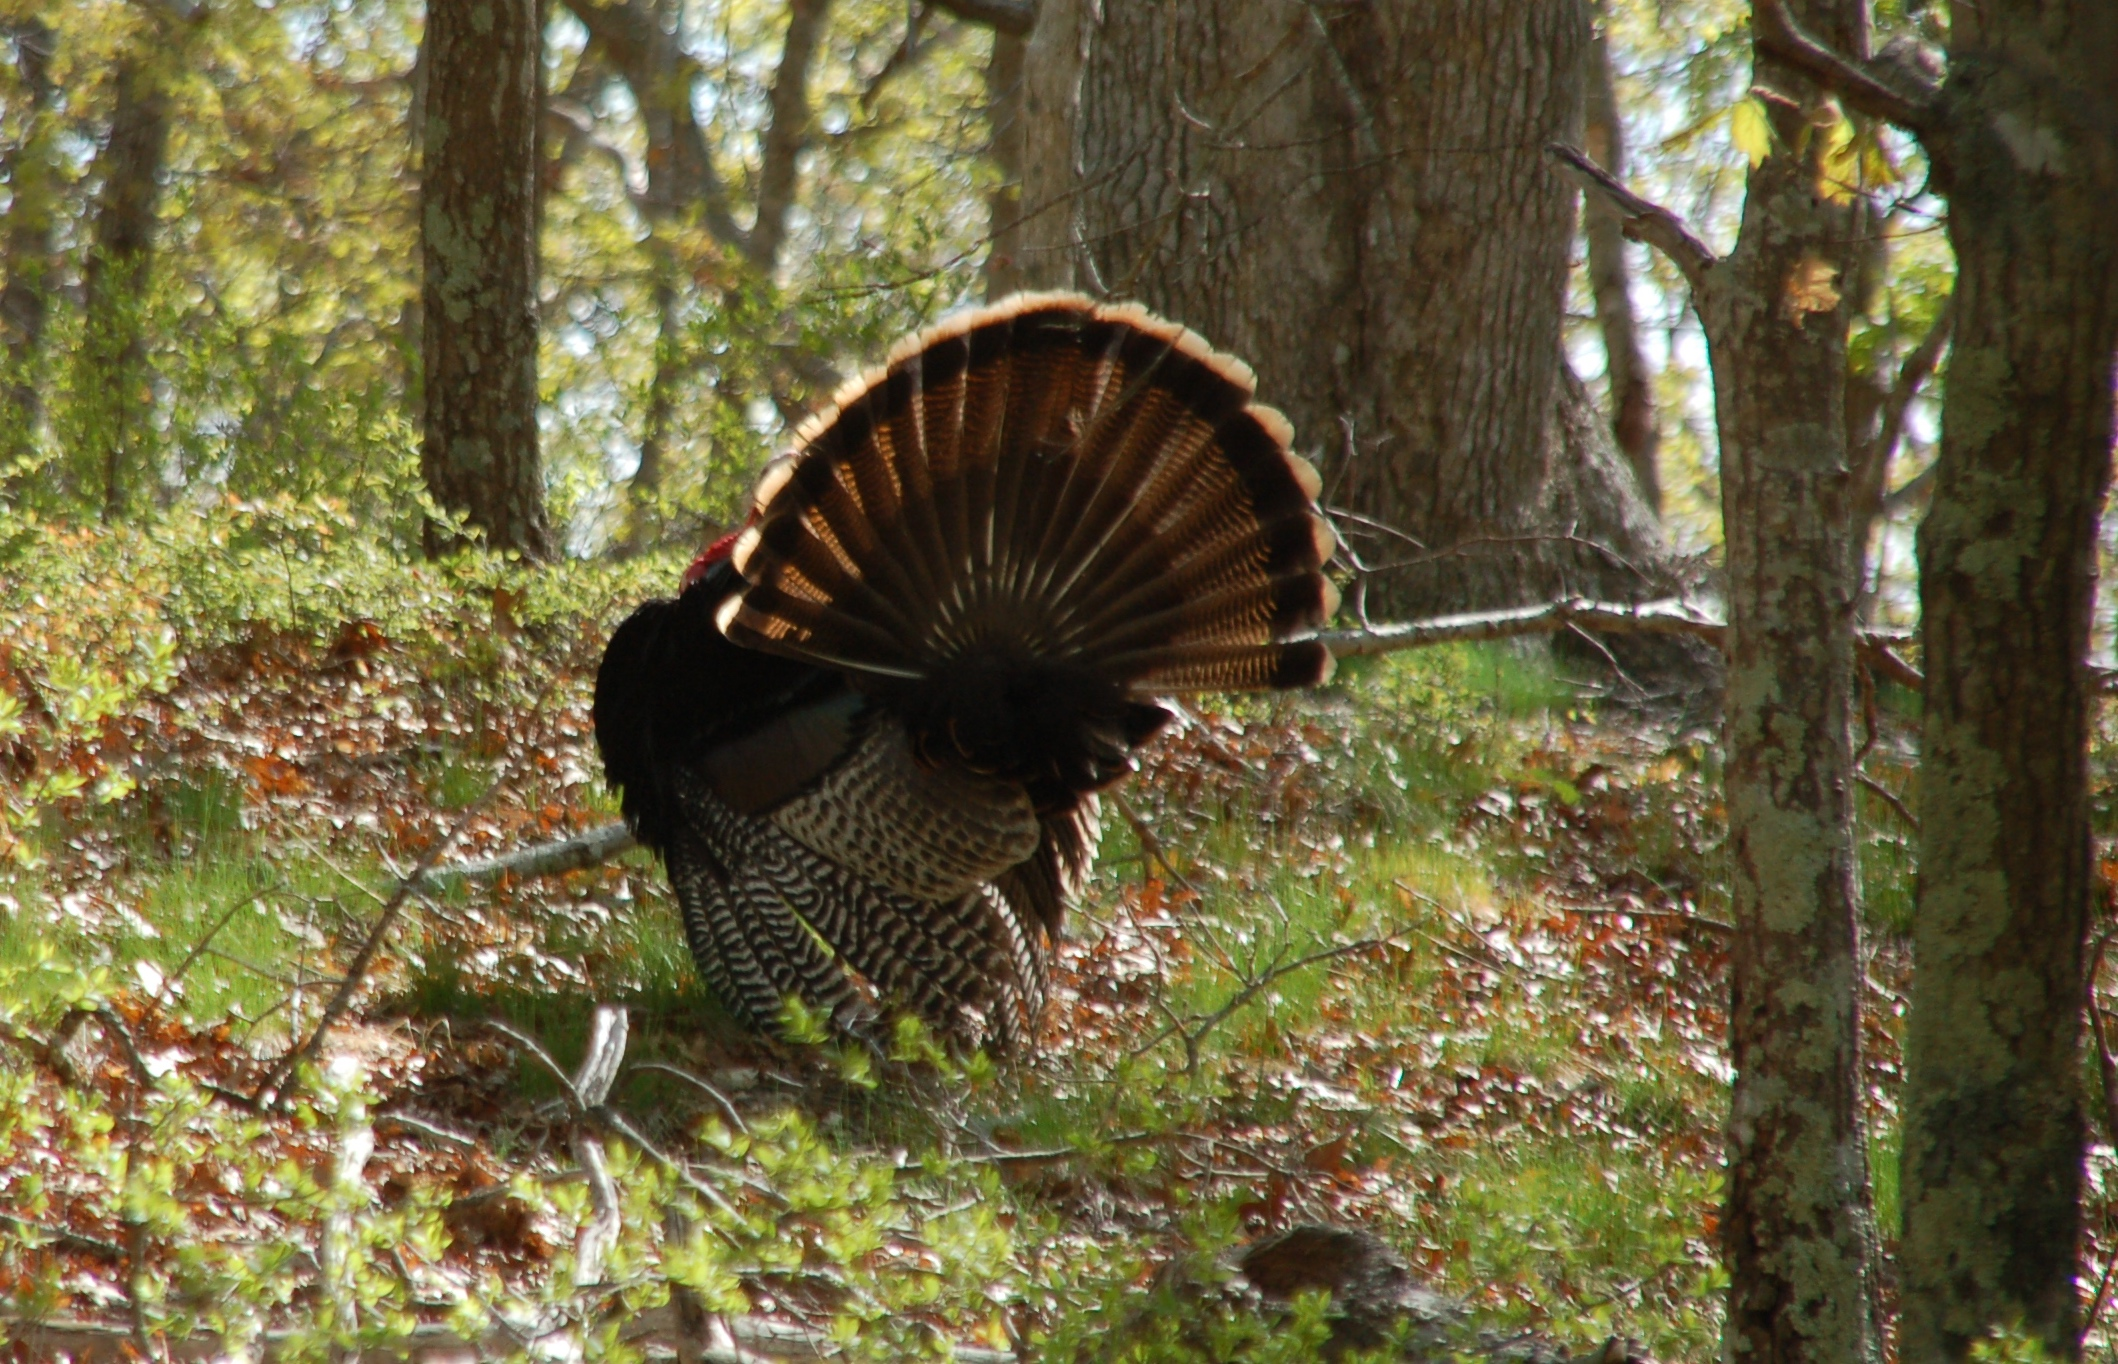 Male turkey courting female